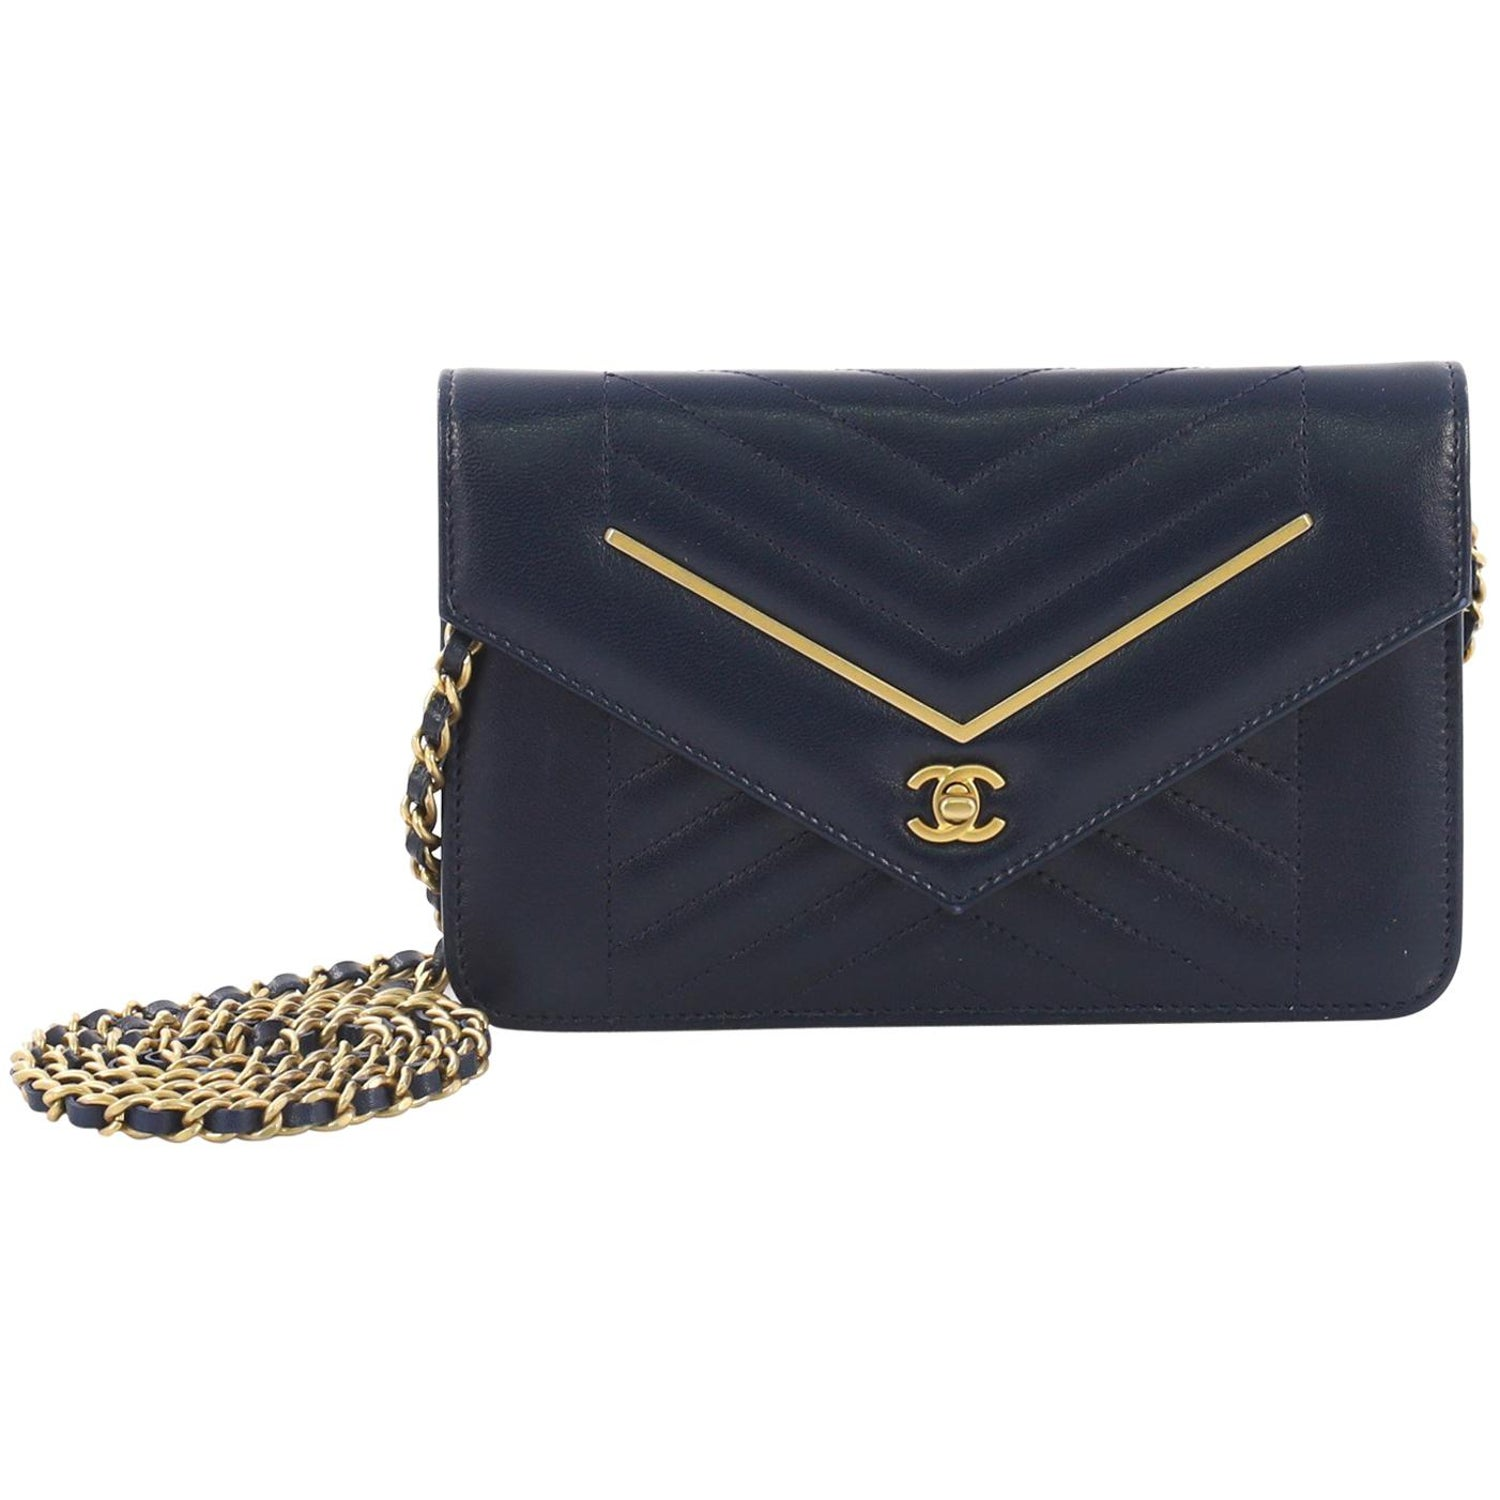 416819712faa Chanel Envelope Wallet on Chain Chevron Lambskin For Sale at 1stdibs